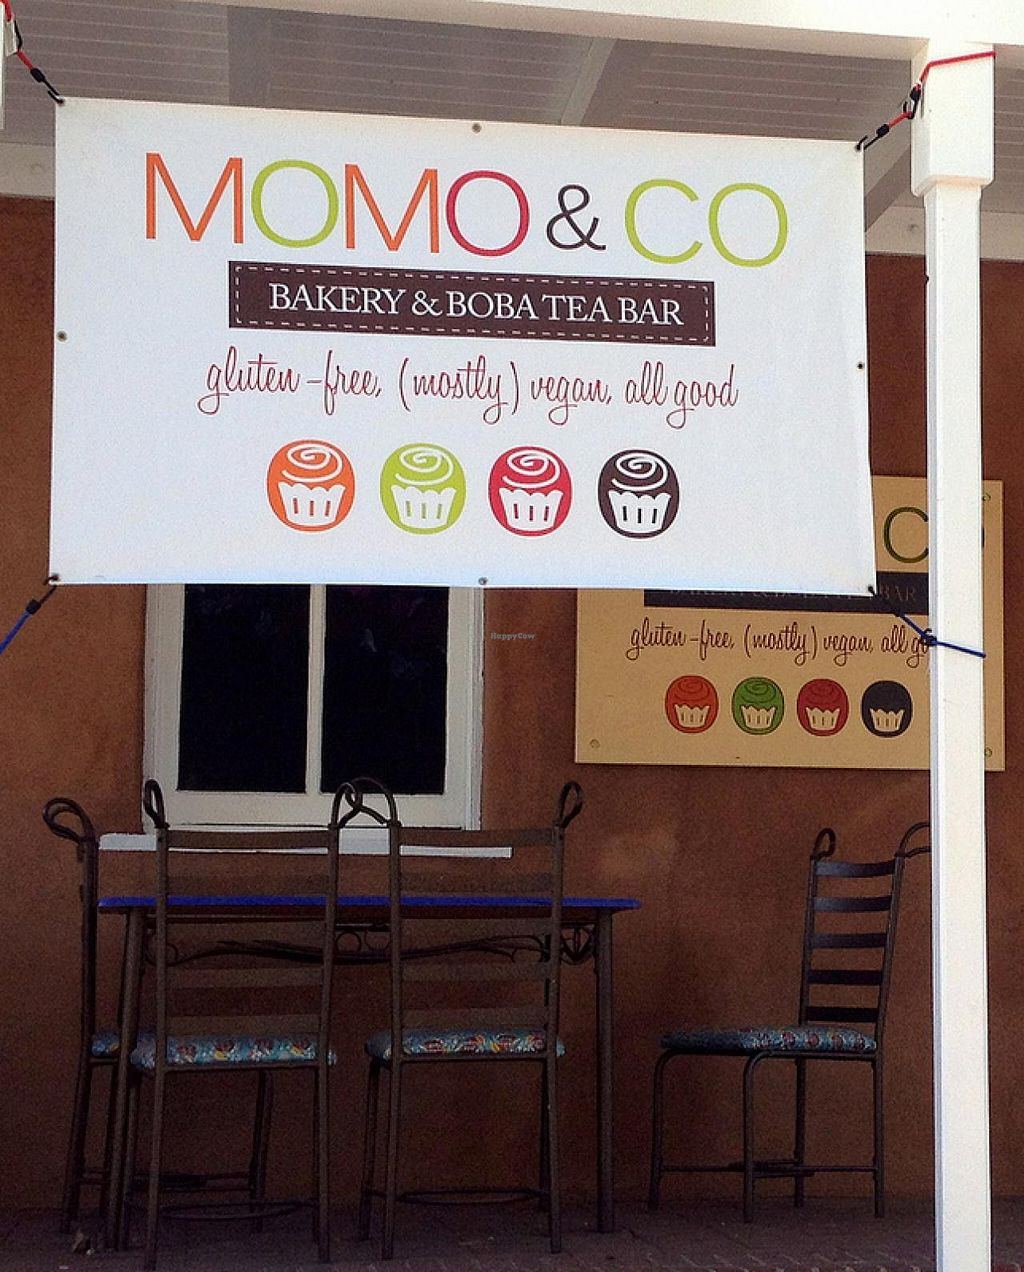 Photo of CLOSED: Momo and Co  by RamblingVegans <br/>Momo & Co <br/> March 2, 2014  - <a href='/contact/abuse/image/35399/65096'>Report</a>